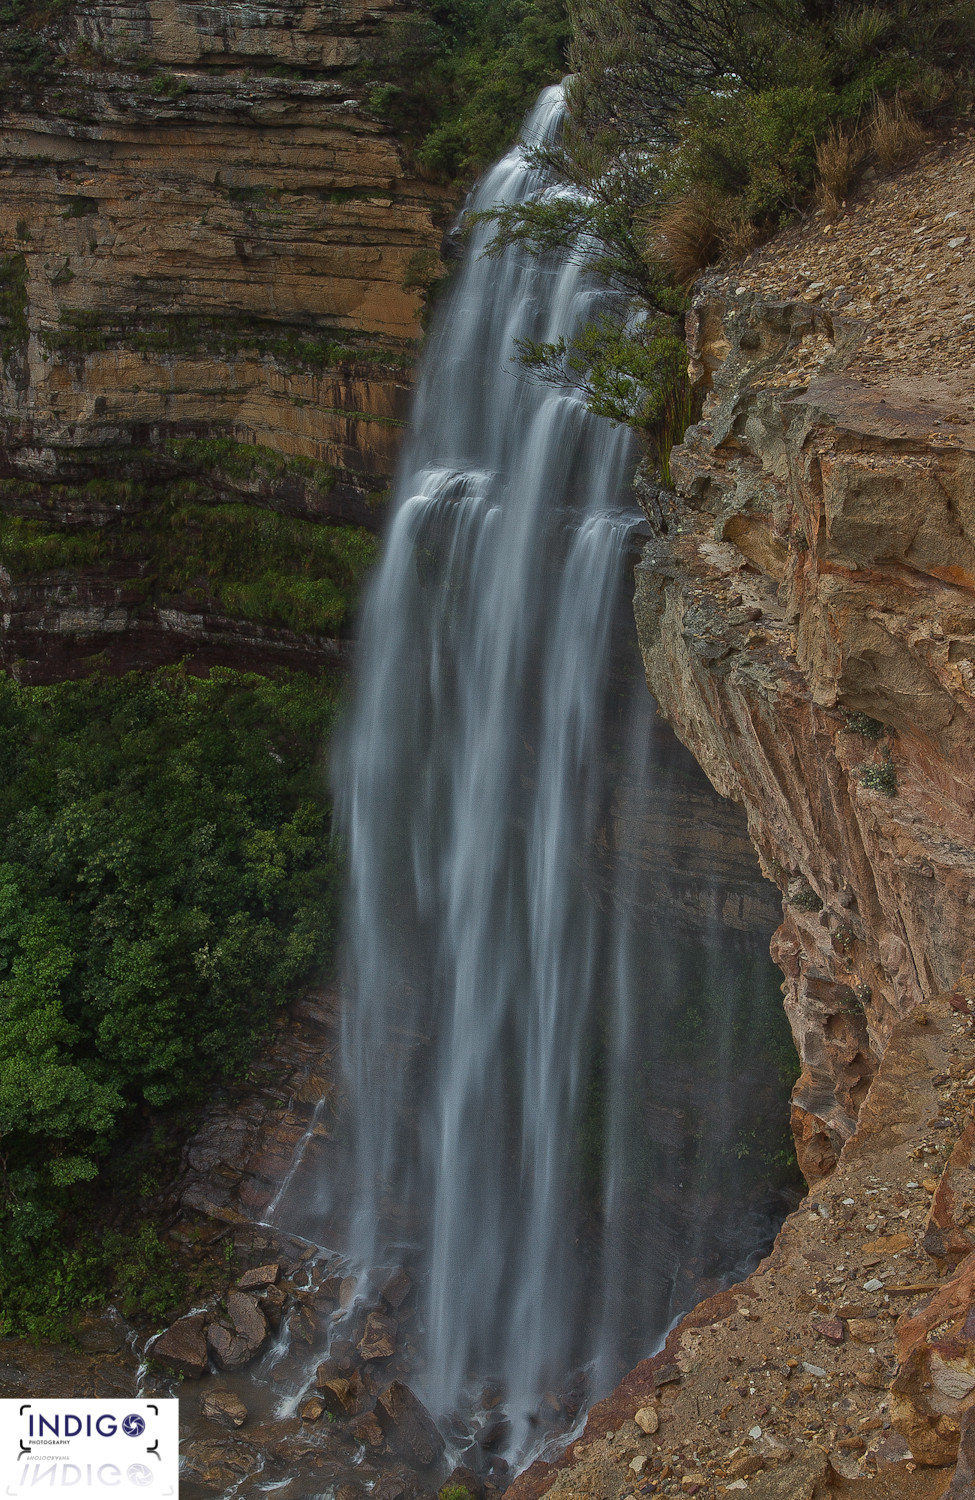 The Majestic Wentworth Falls